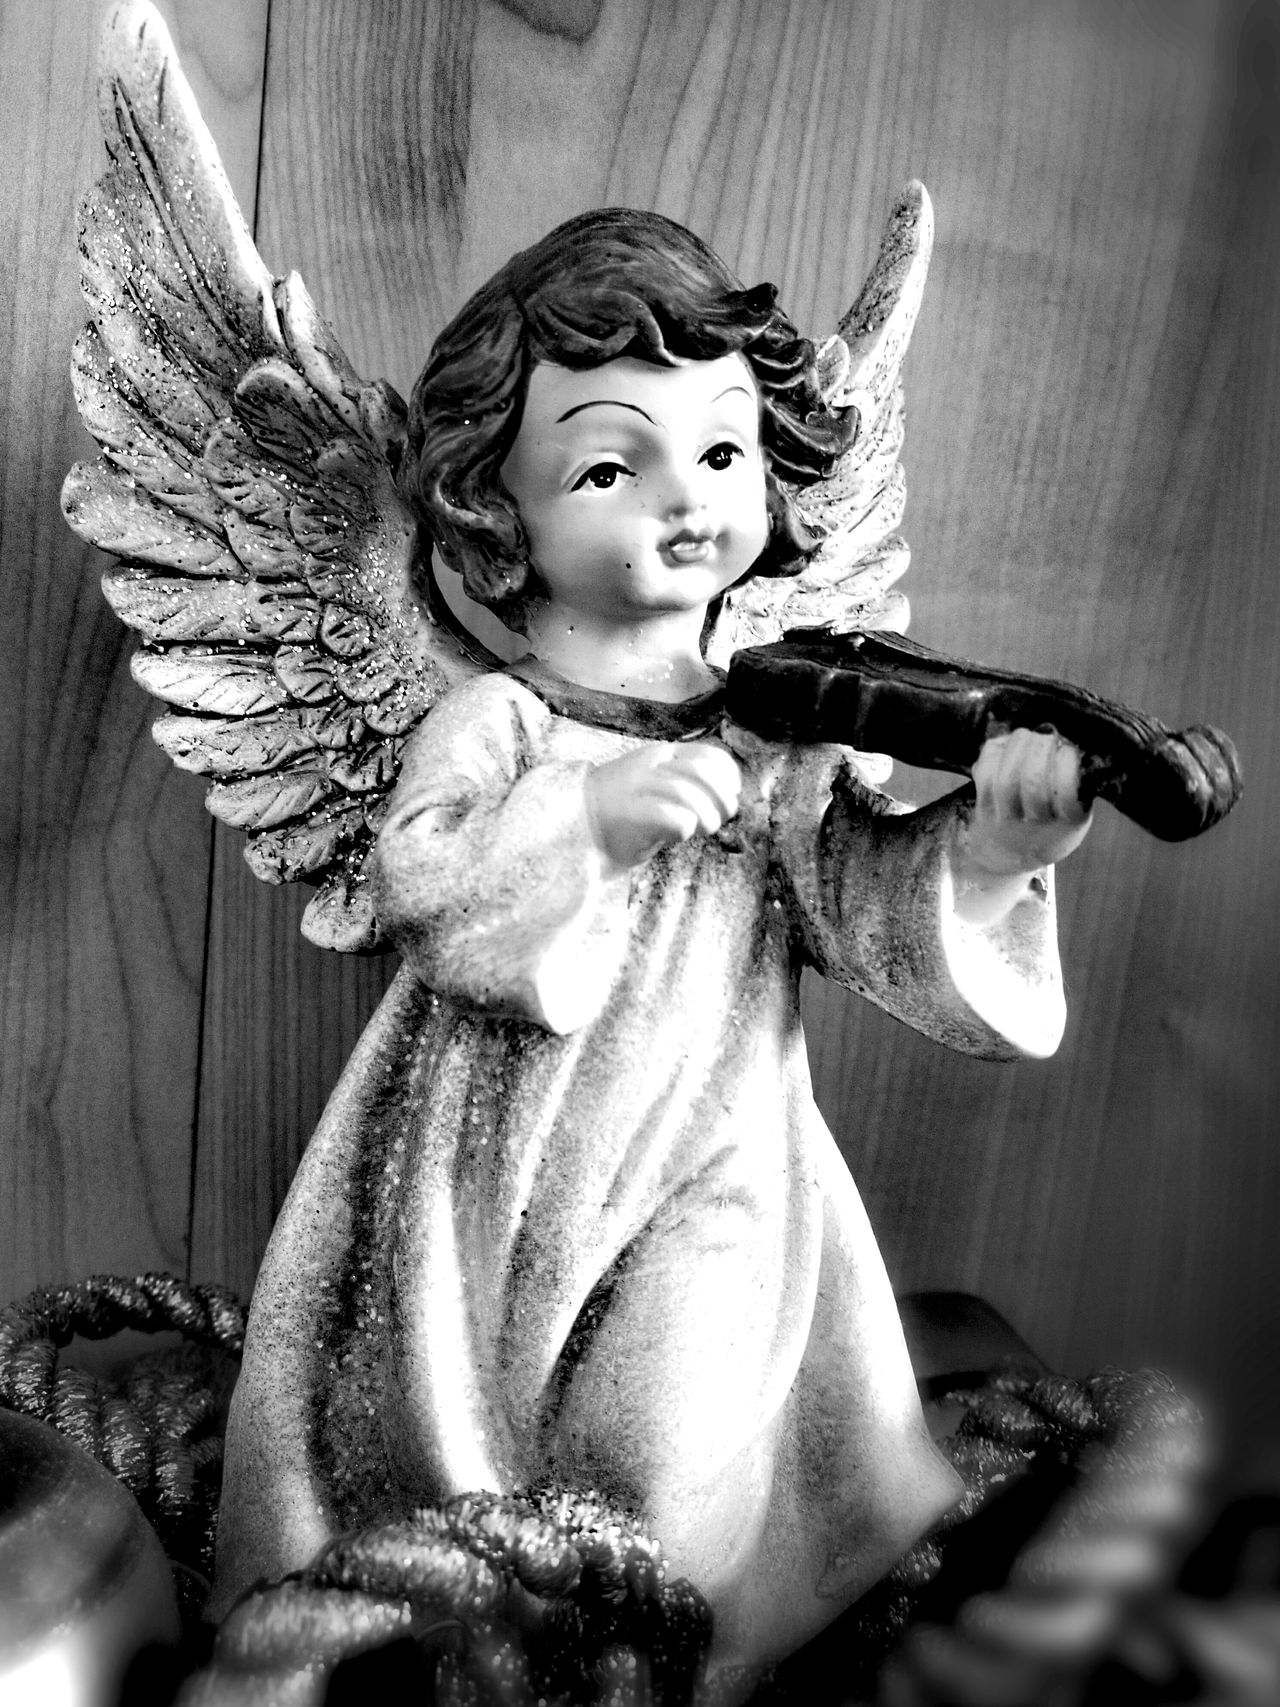 The sound of angels . Indoors  Close-up No People Statue Angel Wings Angels & Demons Angel Statues LoveGodlovepeople Lovegod EyeEmNewHere